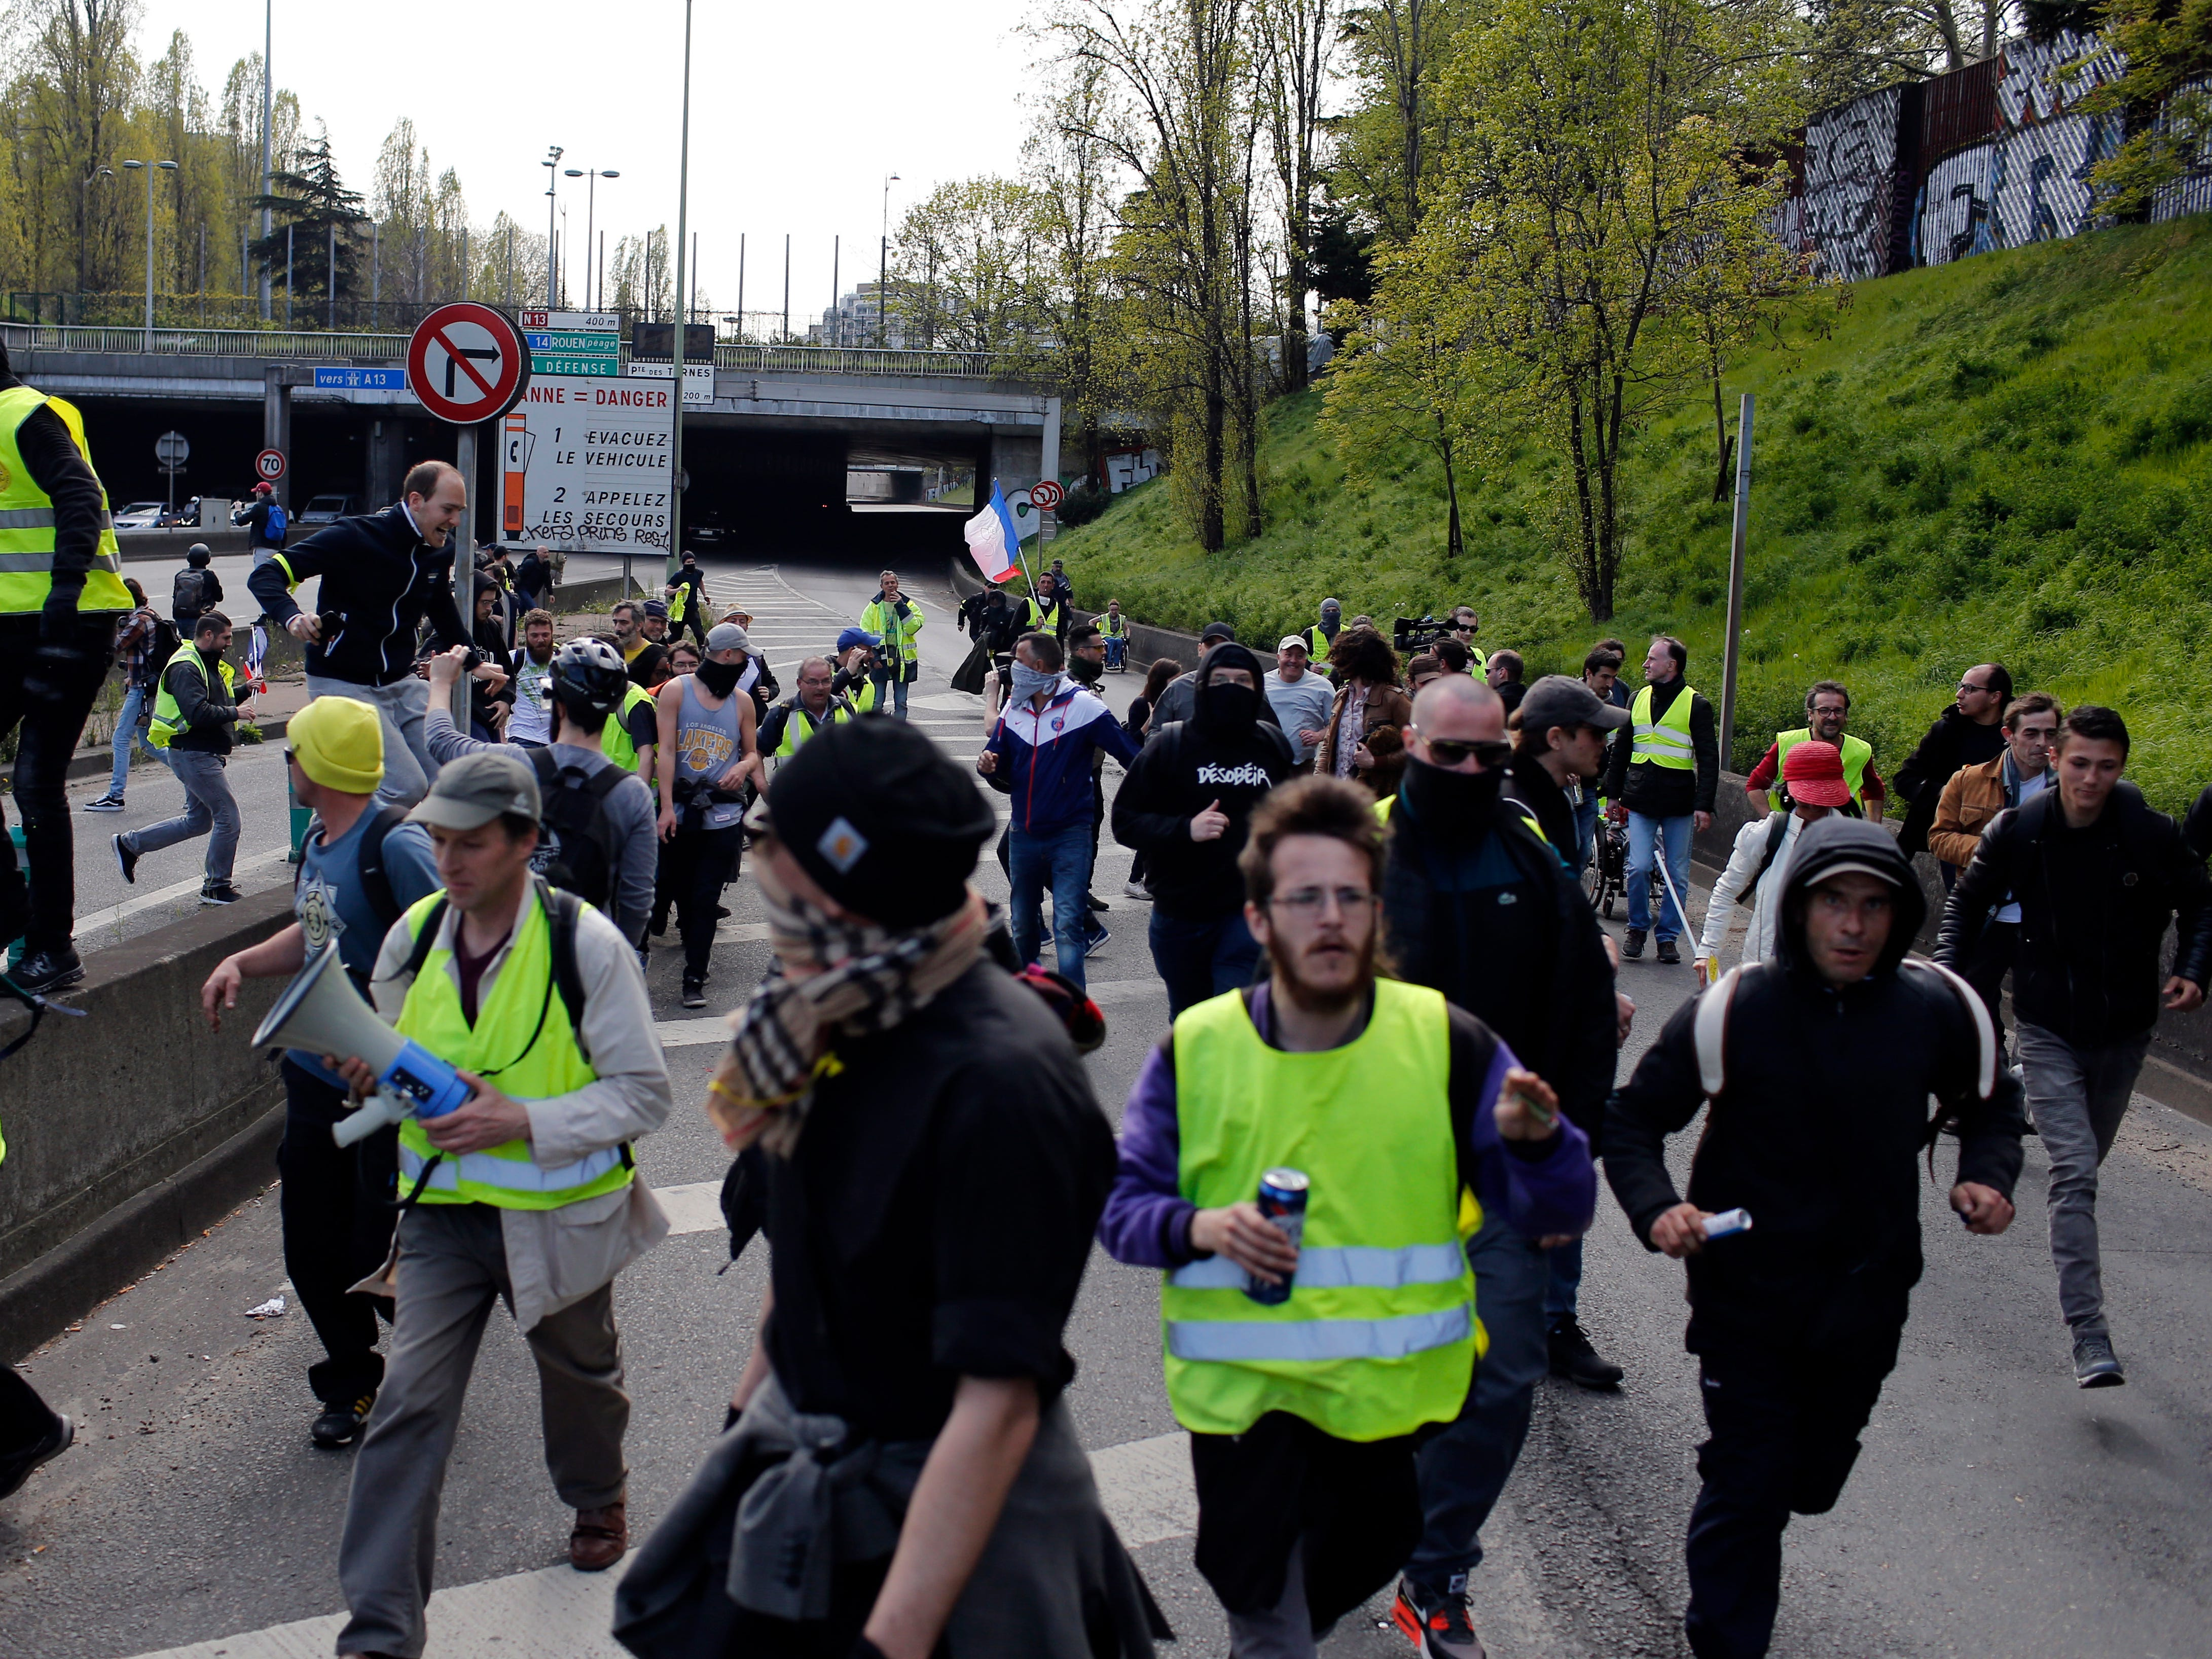 Protesters run from the police after an attempt to block the highway at Porte de Champerret in Paris, France, Saturday, April 6, 2019. Protesters from the yellow vest movement are taking to the streets of France for a 21st straight weekend, with hundreds gathered for a march across Paris, one of numerous protests around the country.